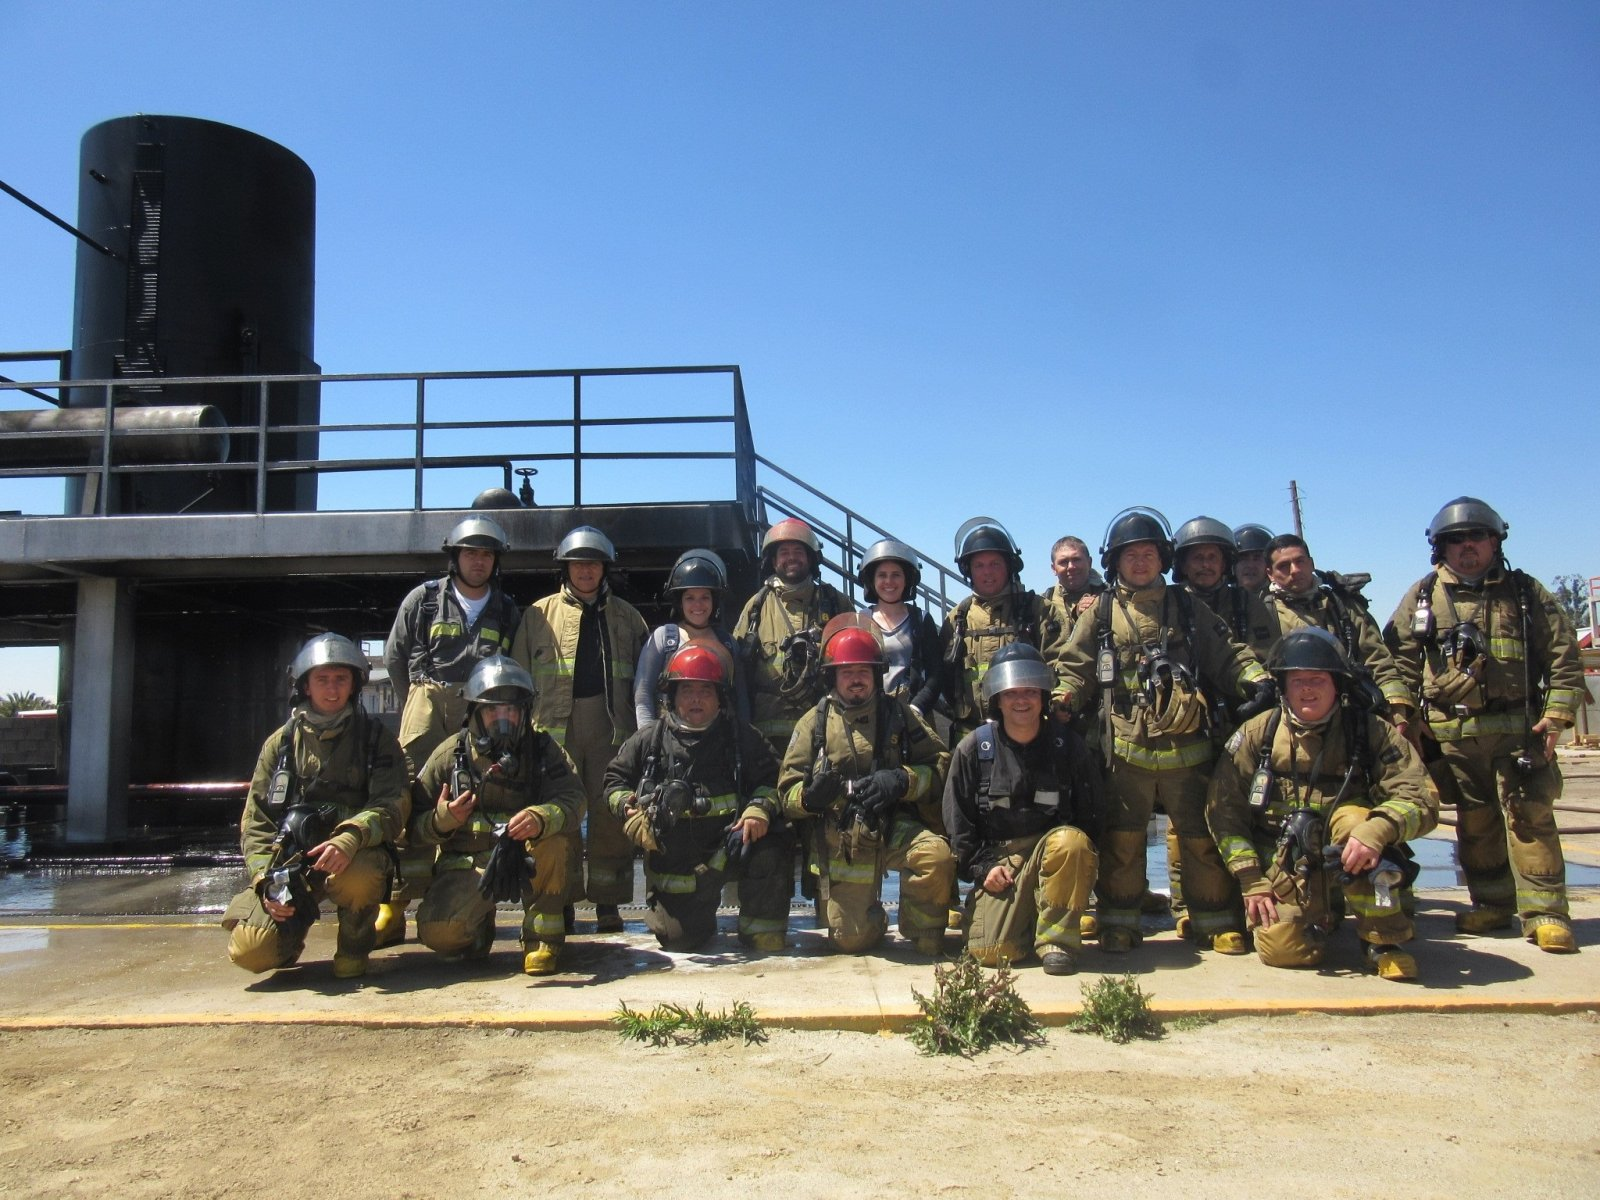 Fire-fighting Training Camp in Chile